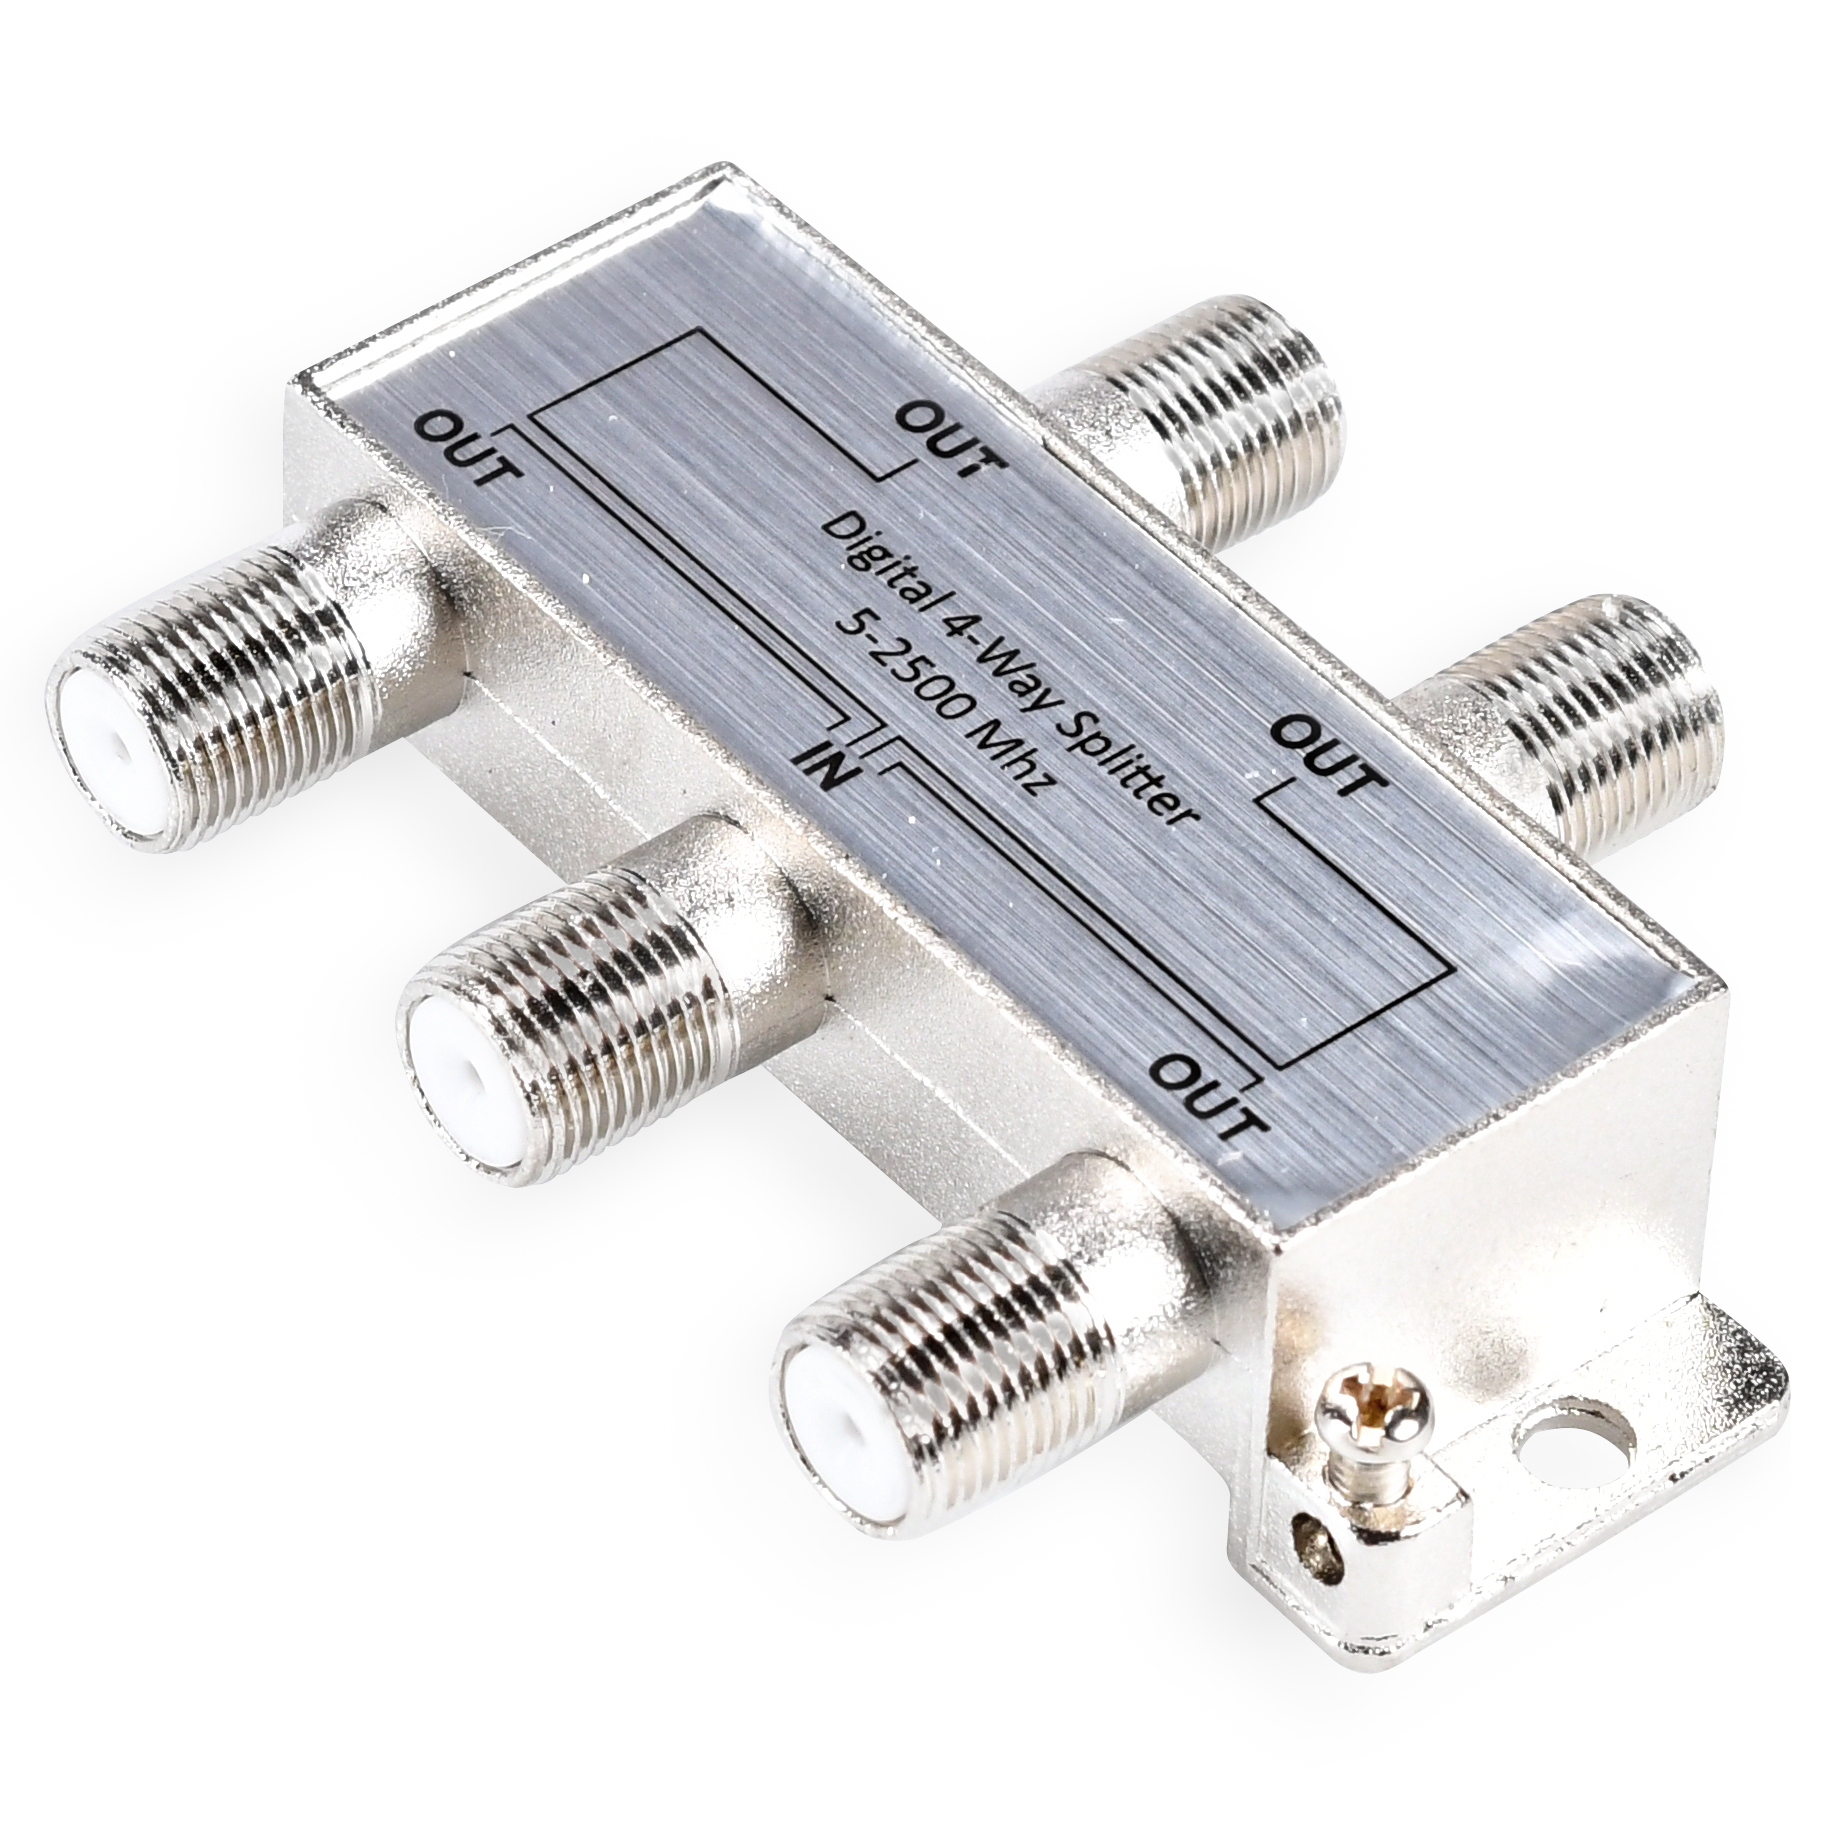 Onn Digital Coaxial 4-Way Cable Splitter